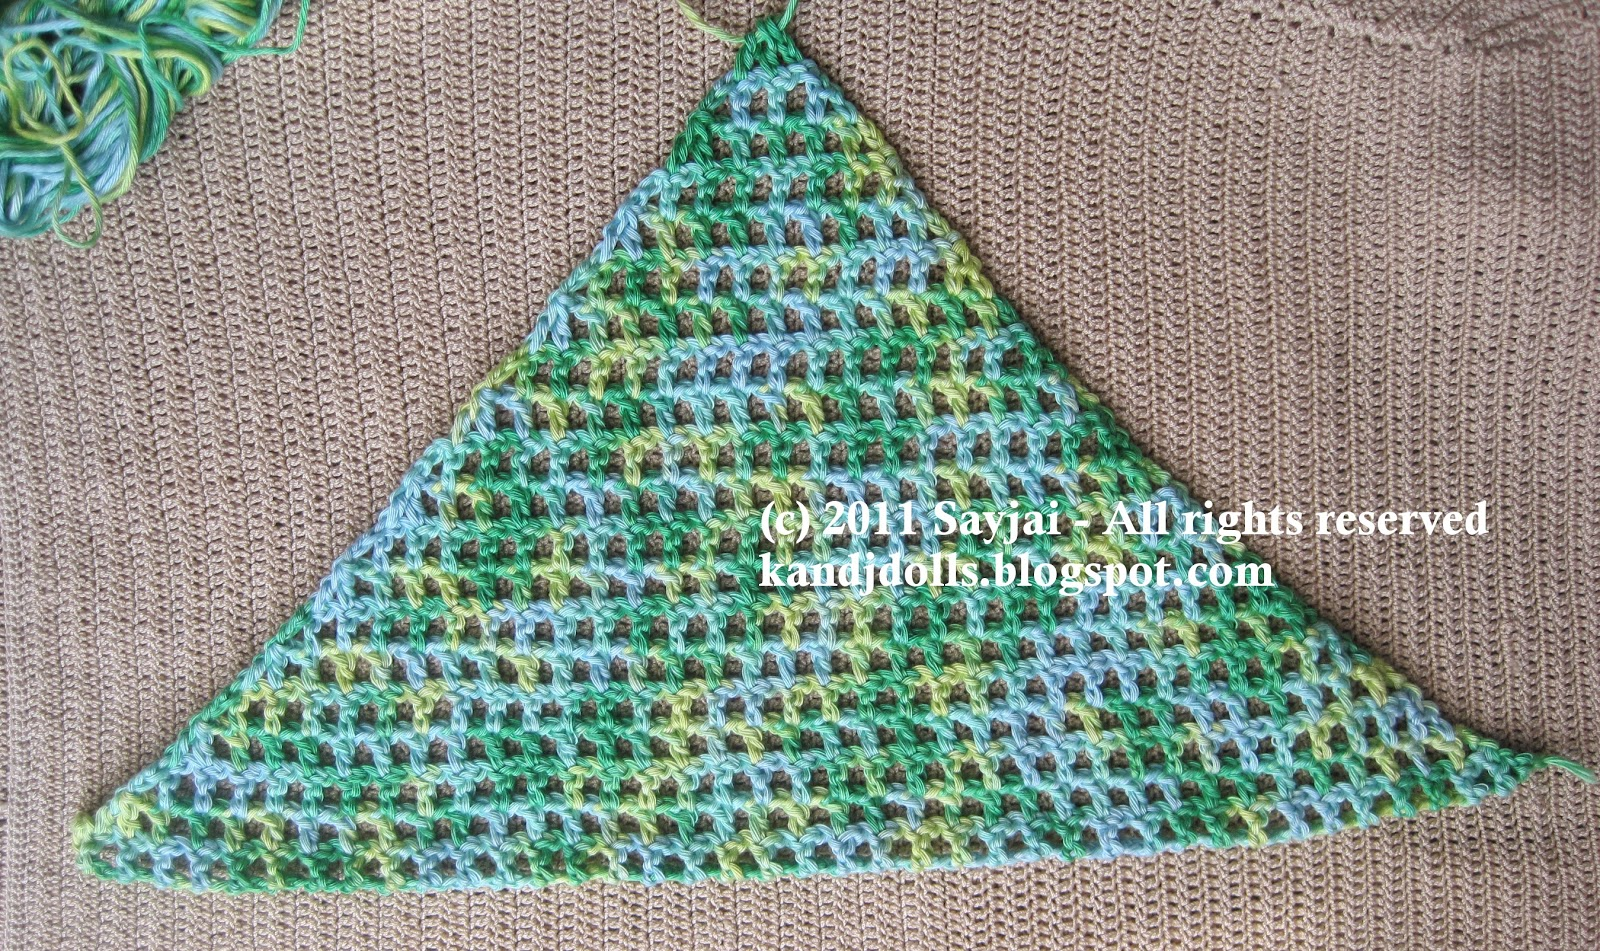 Crochet Triangle : Crocheted Triangle Fashions - Welcome to the Craft Yarn Council